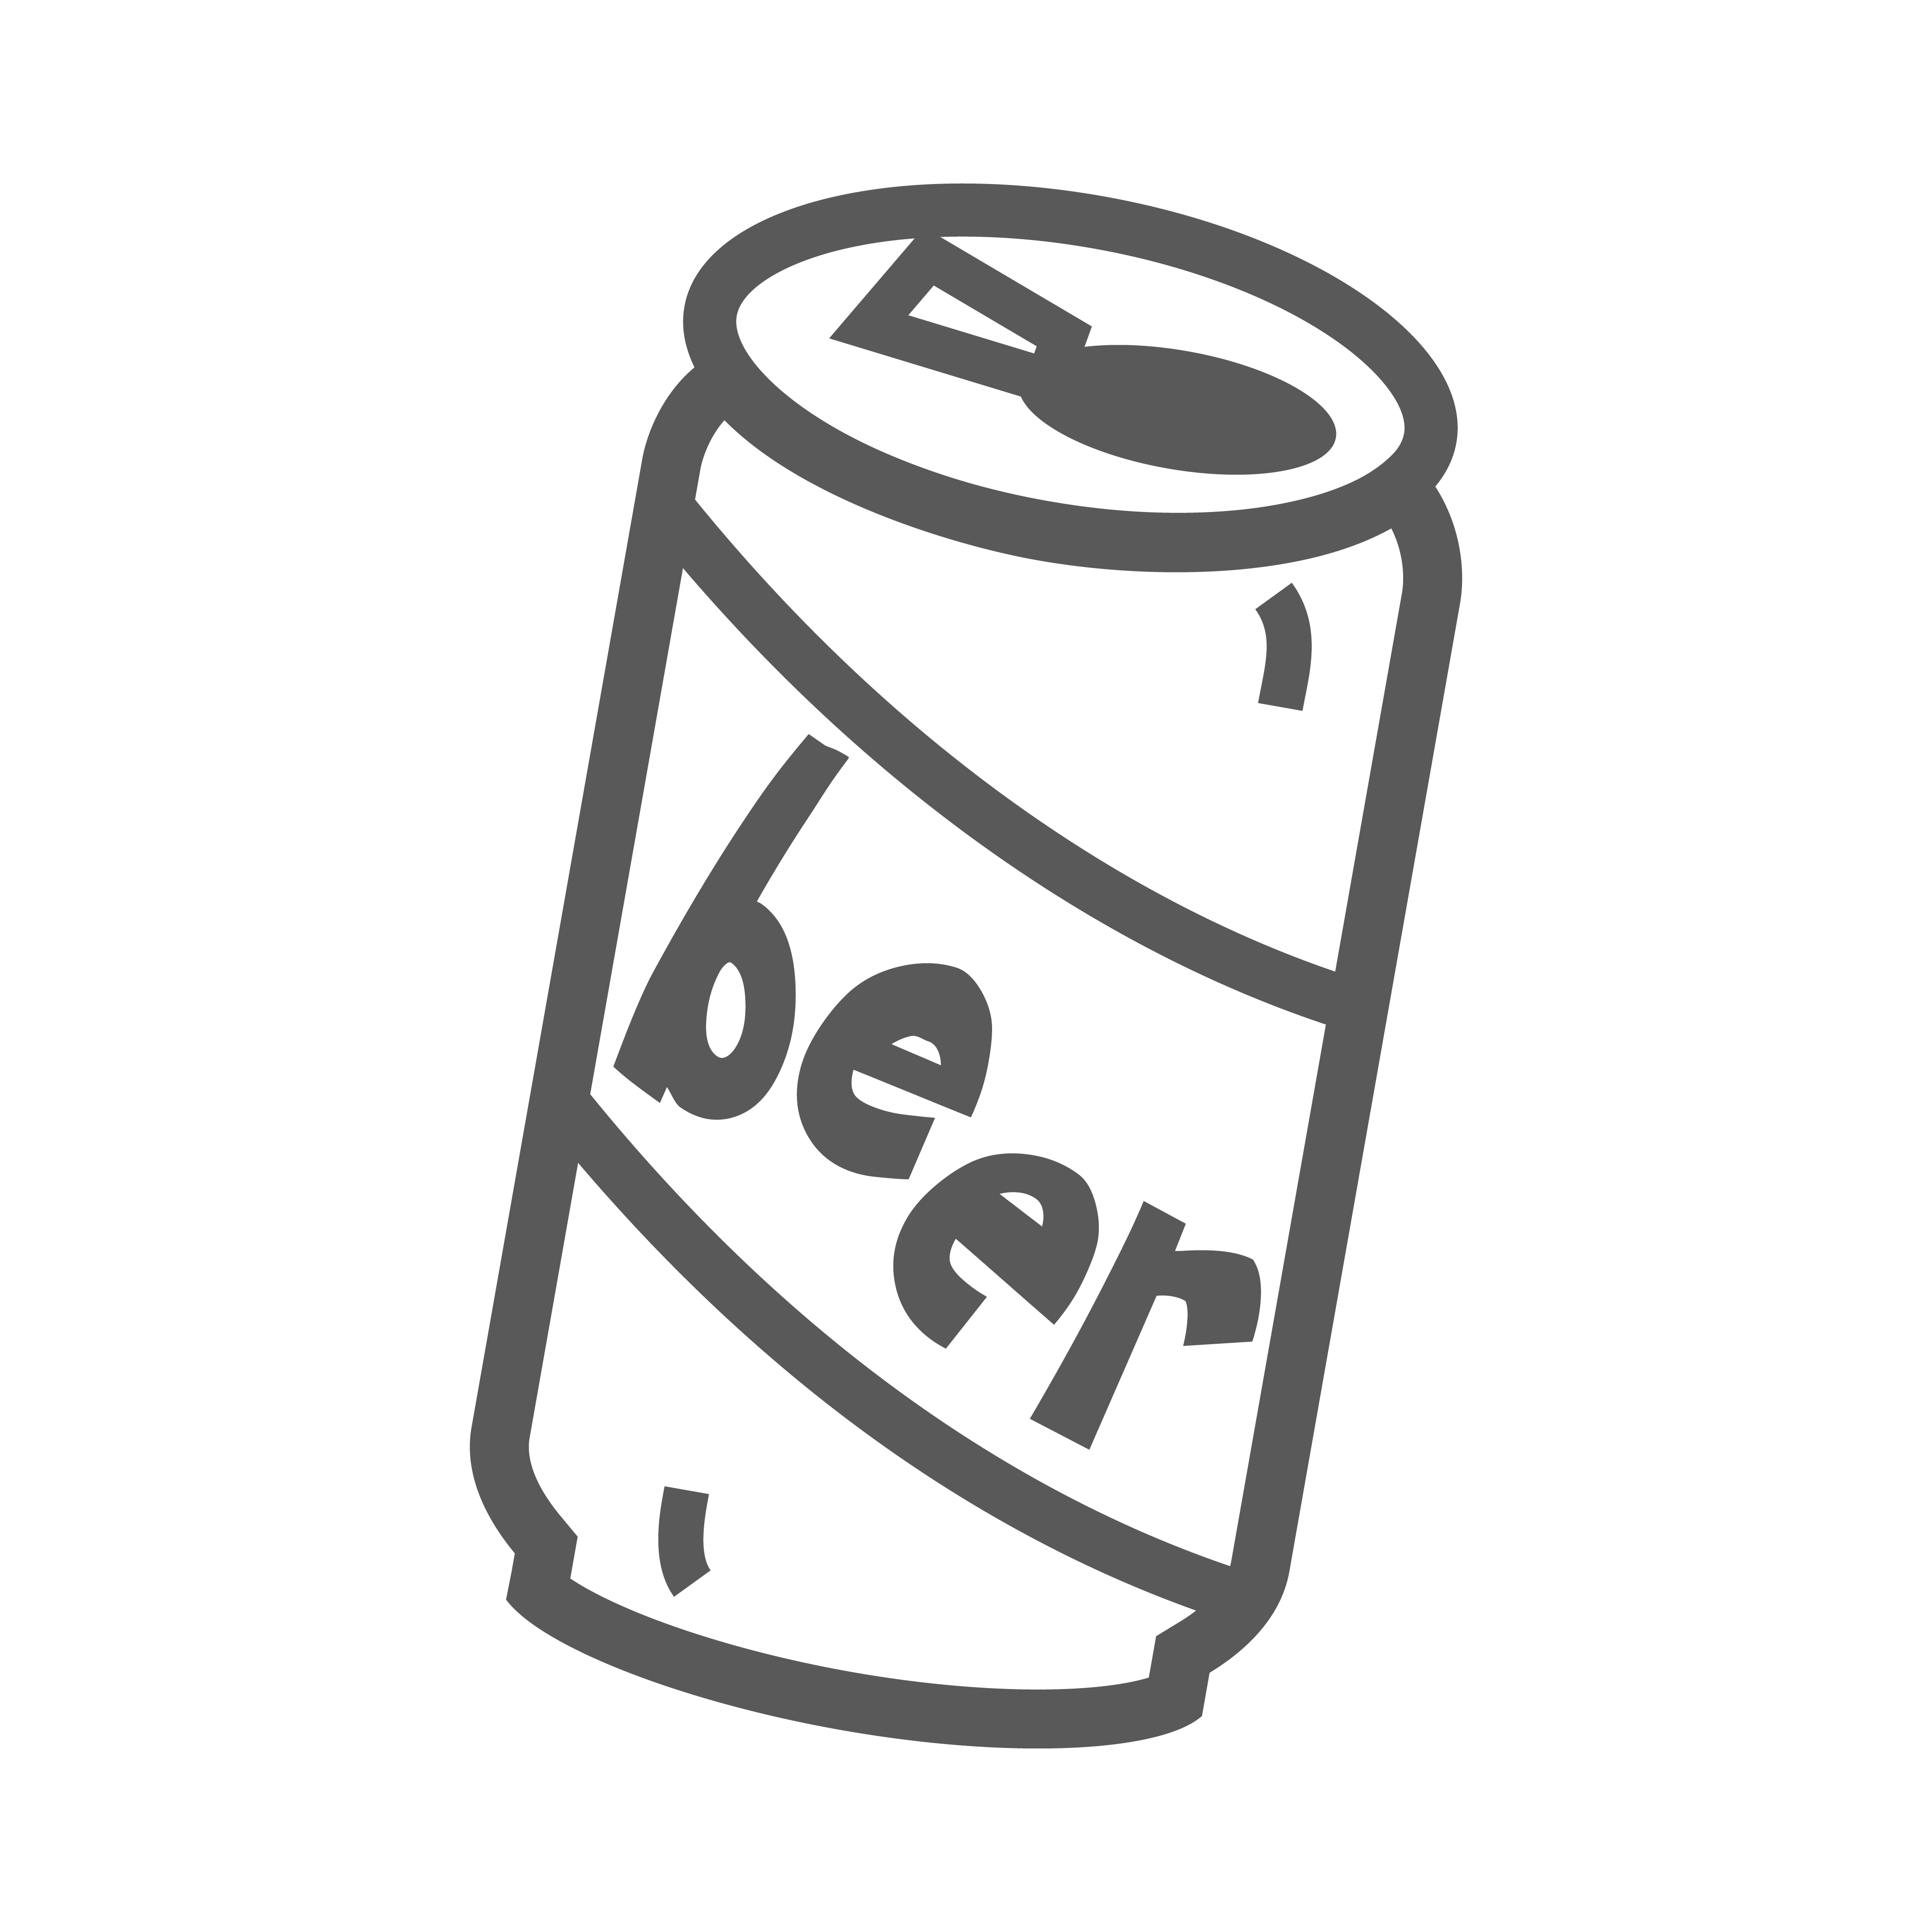 Beer can clipart black and white 1 » Clipart Station.